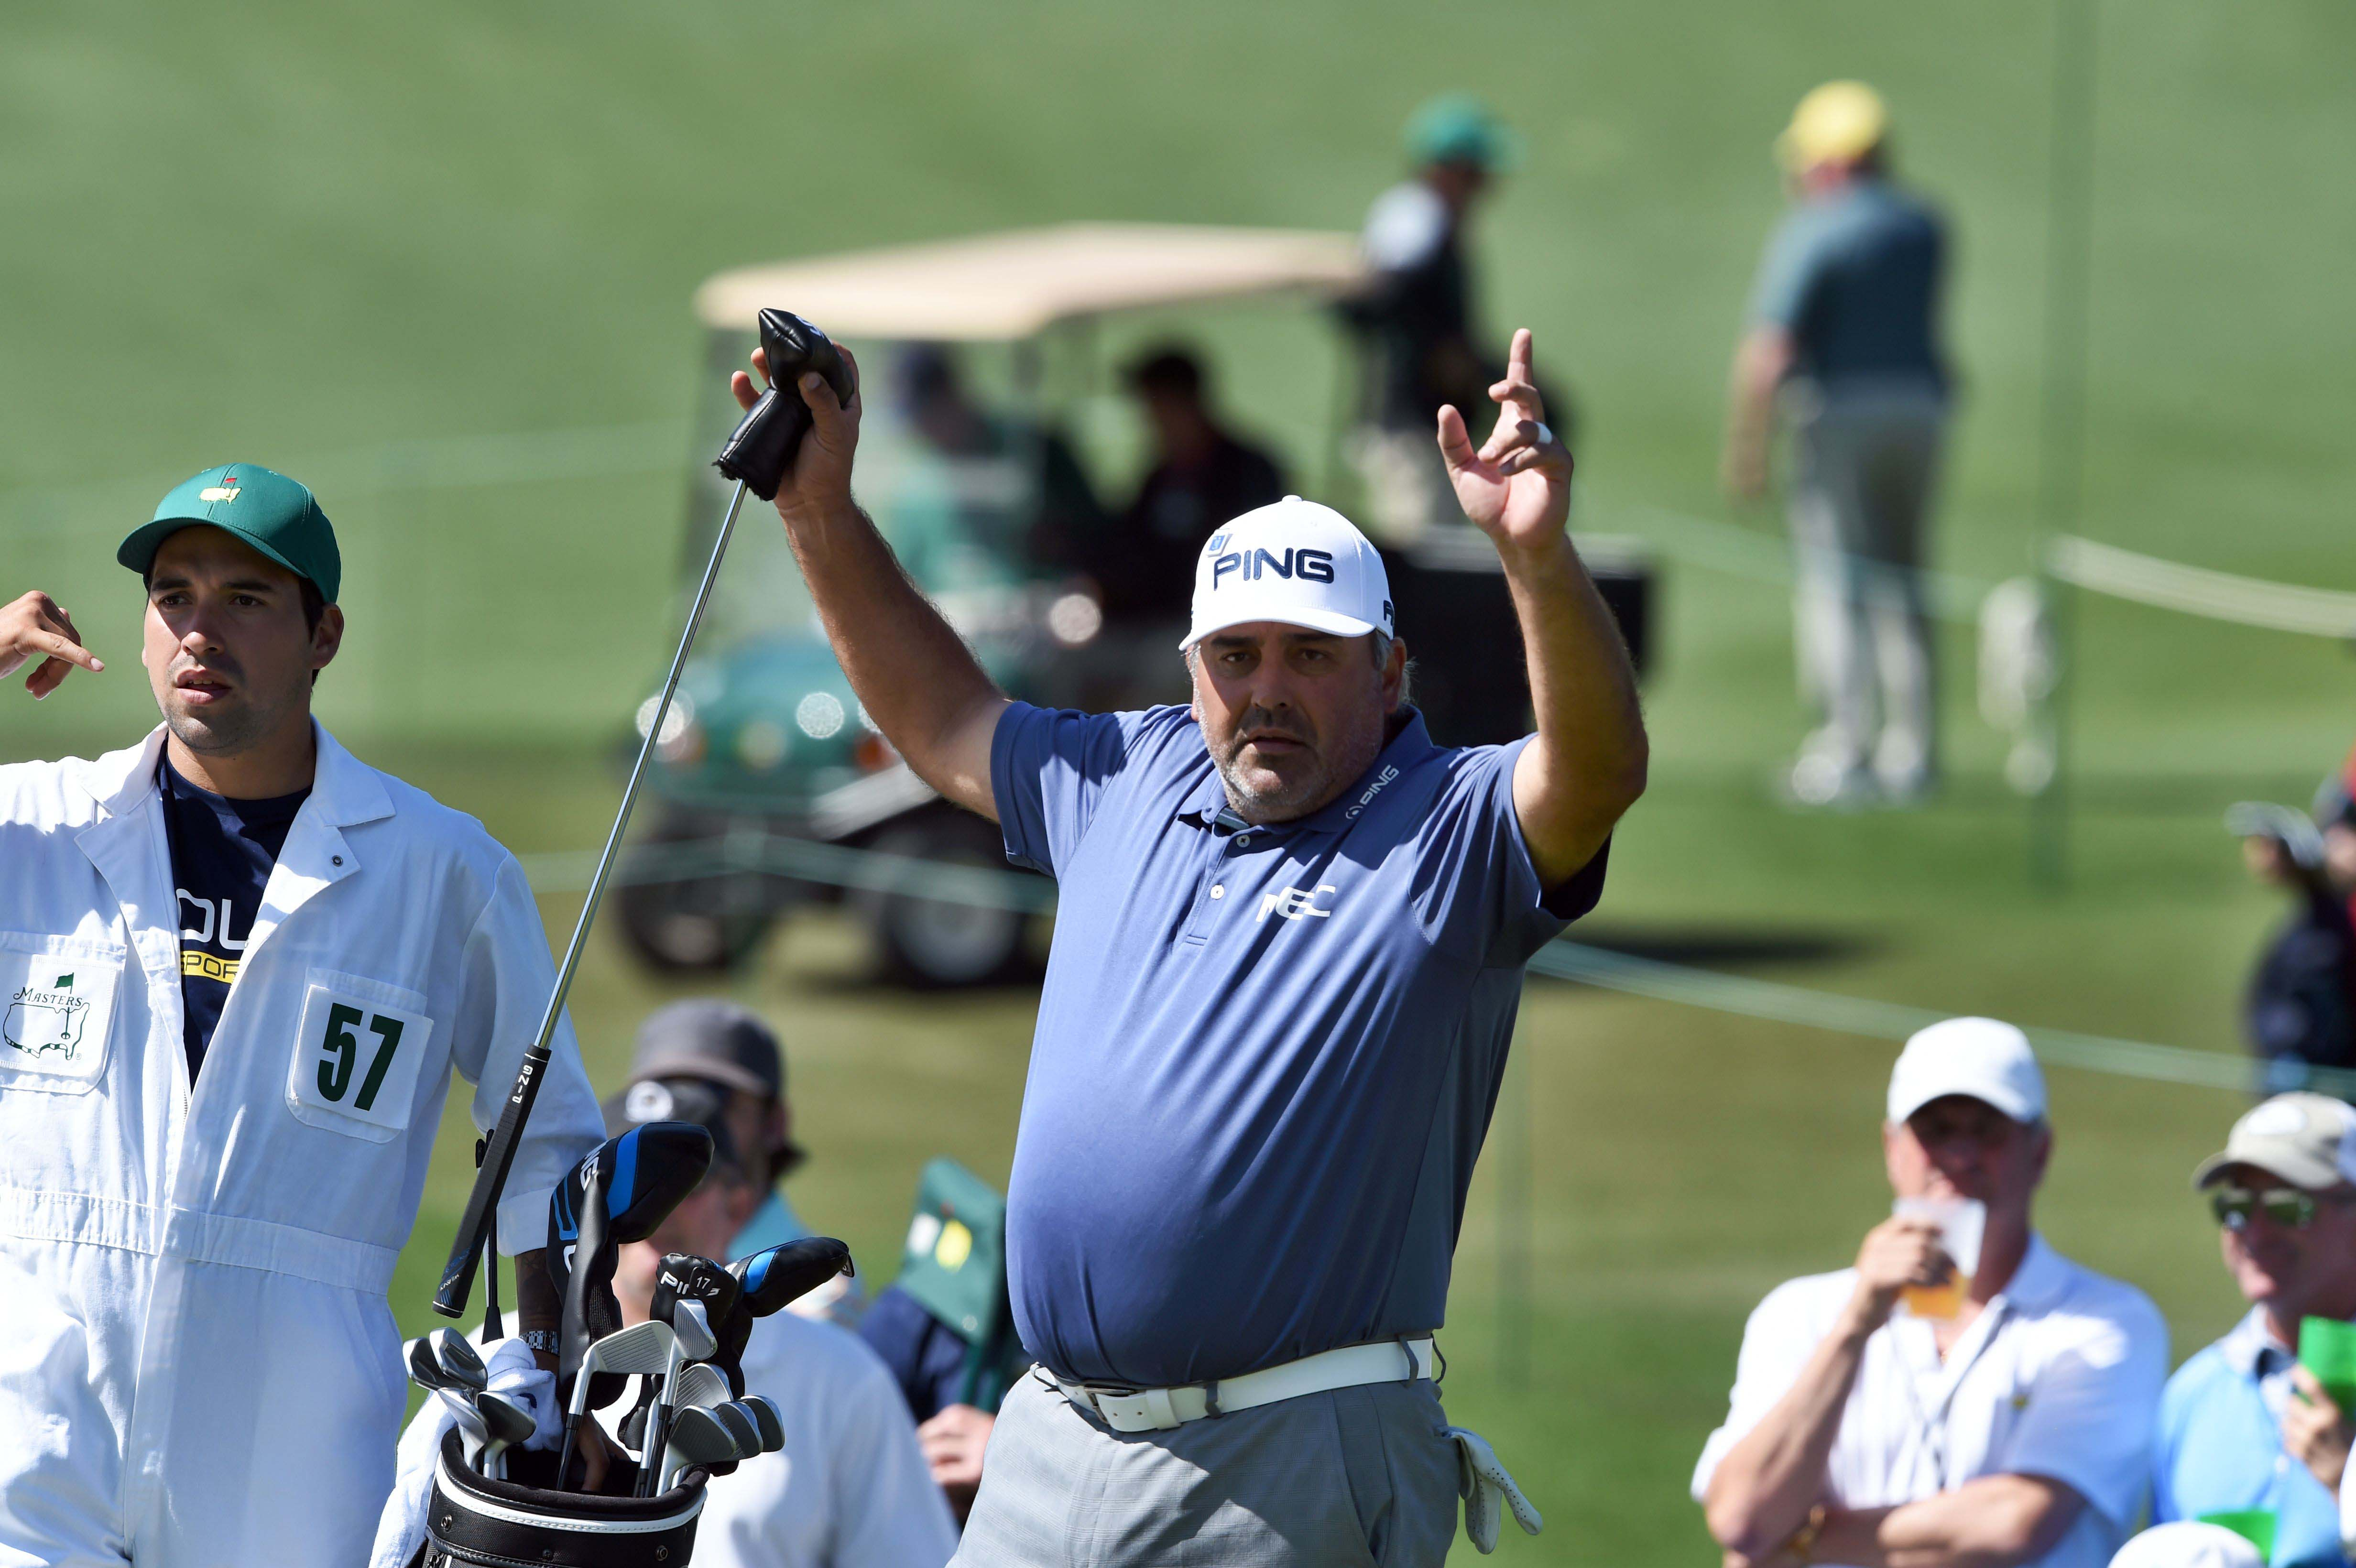 If it looks like a duck and walks like a duck, it's probably a former Masters champion